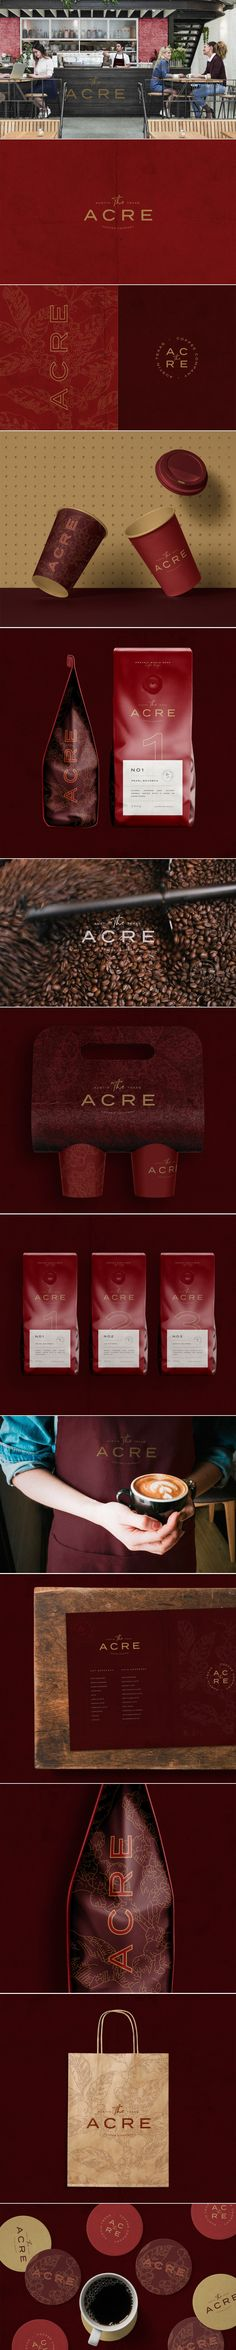 Acre coffee company branding and packaging by monajans | Fivestar Branding Agency – Design and Branding Agency & Curated Inspiration Gallery  #coffee #branding #logo #design #packaging #identity #brandinginspiration #behance #pinterest #dribbble #fivestarbranding